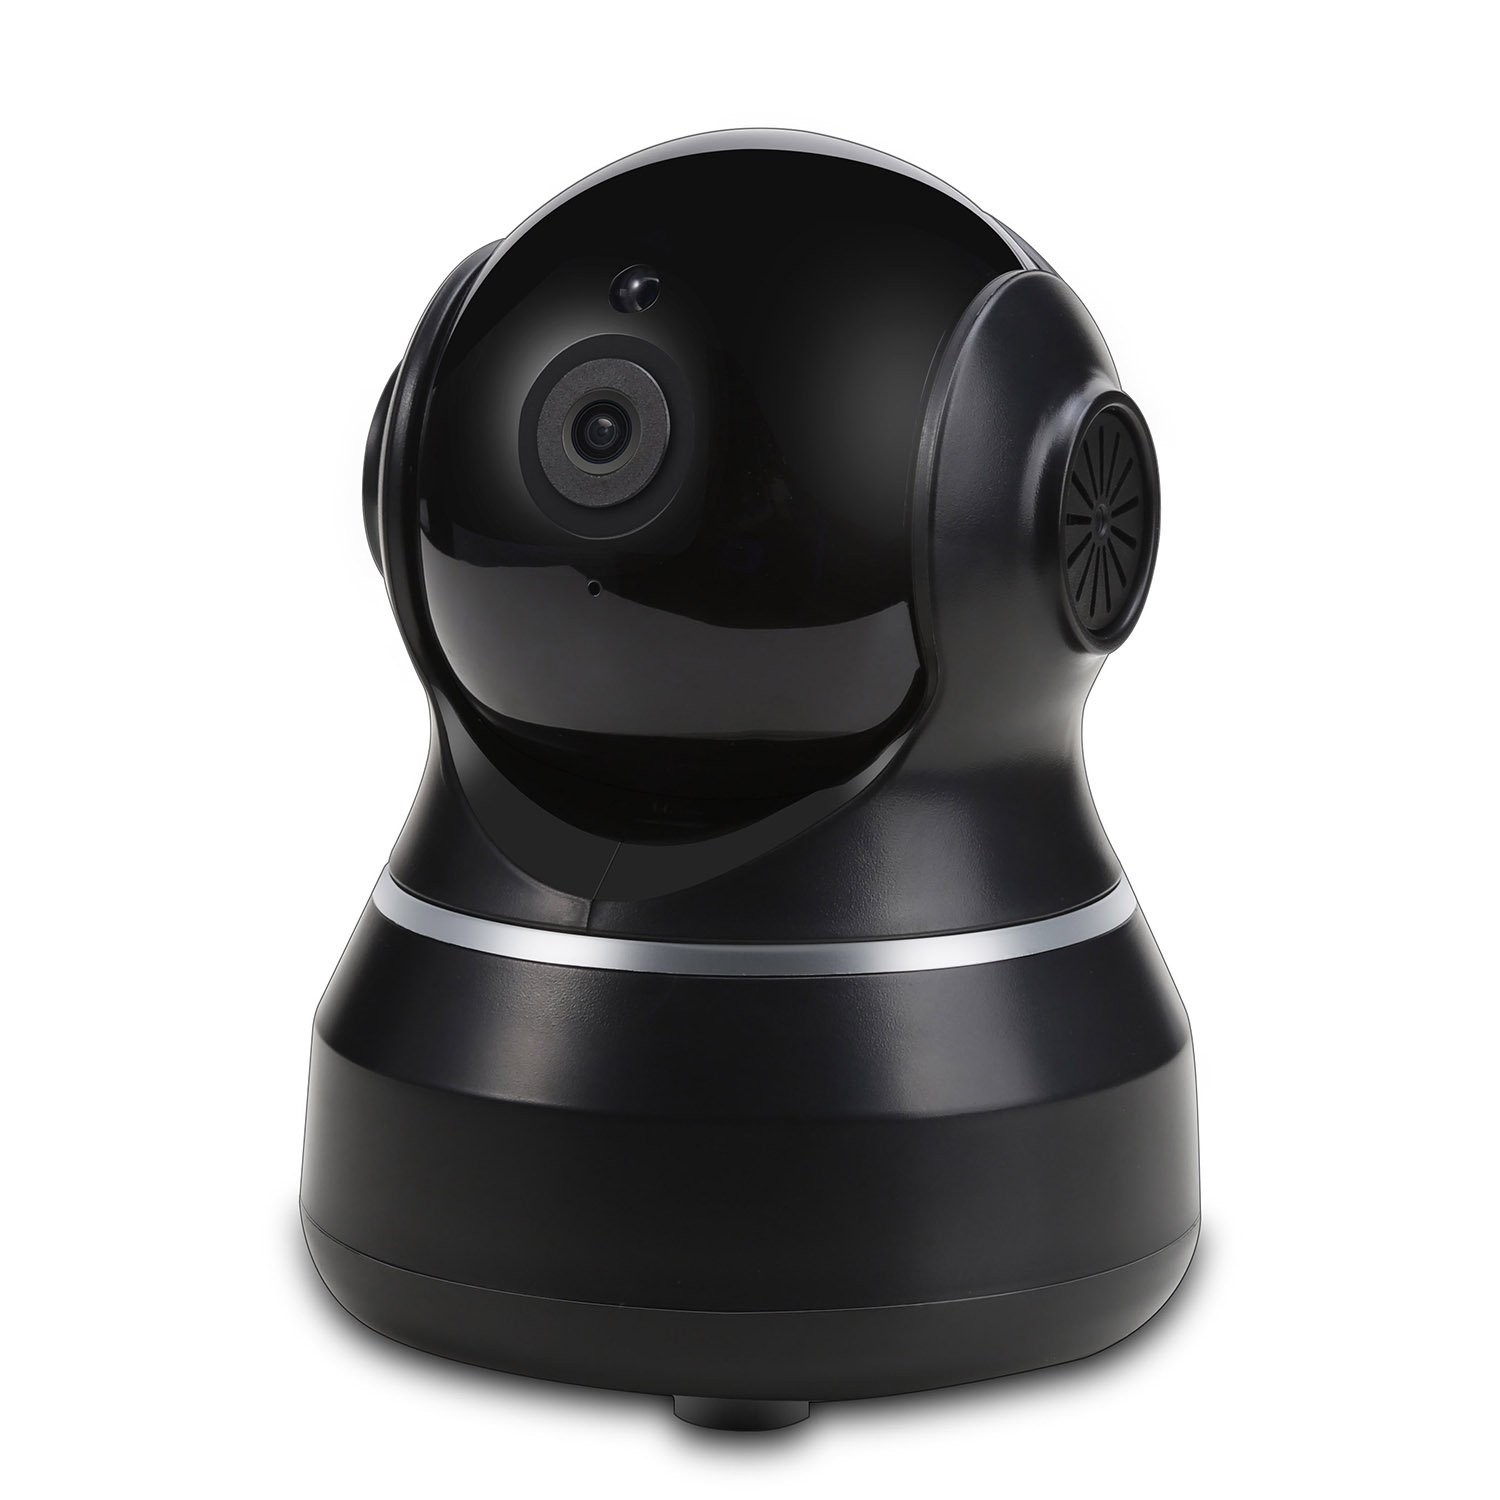 Dome Camera Pan/Tilt / Zoom Home Wireless IP Security Surveillance System 720p HD Night Vision, Remote Monitor iOS, Android App, Motion Detection Indoor Camera Micro SD Card Slot